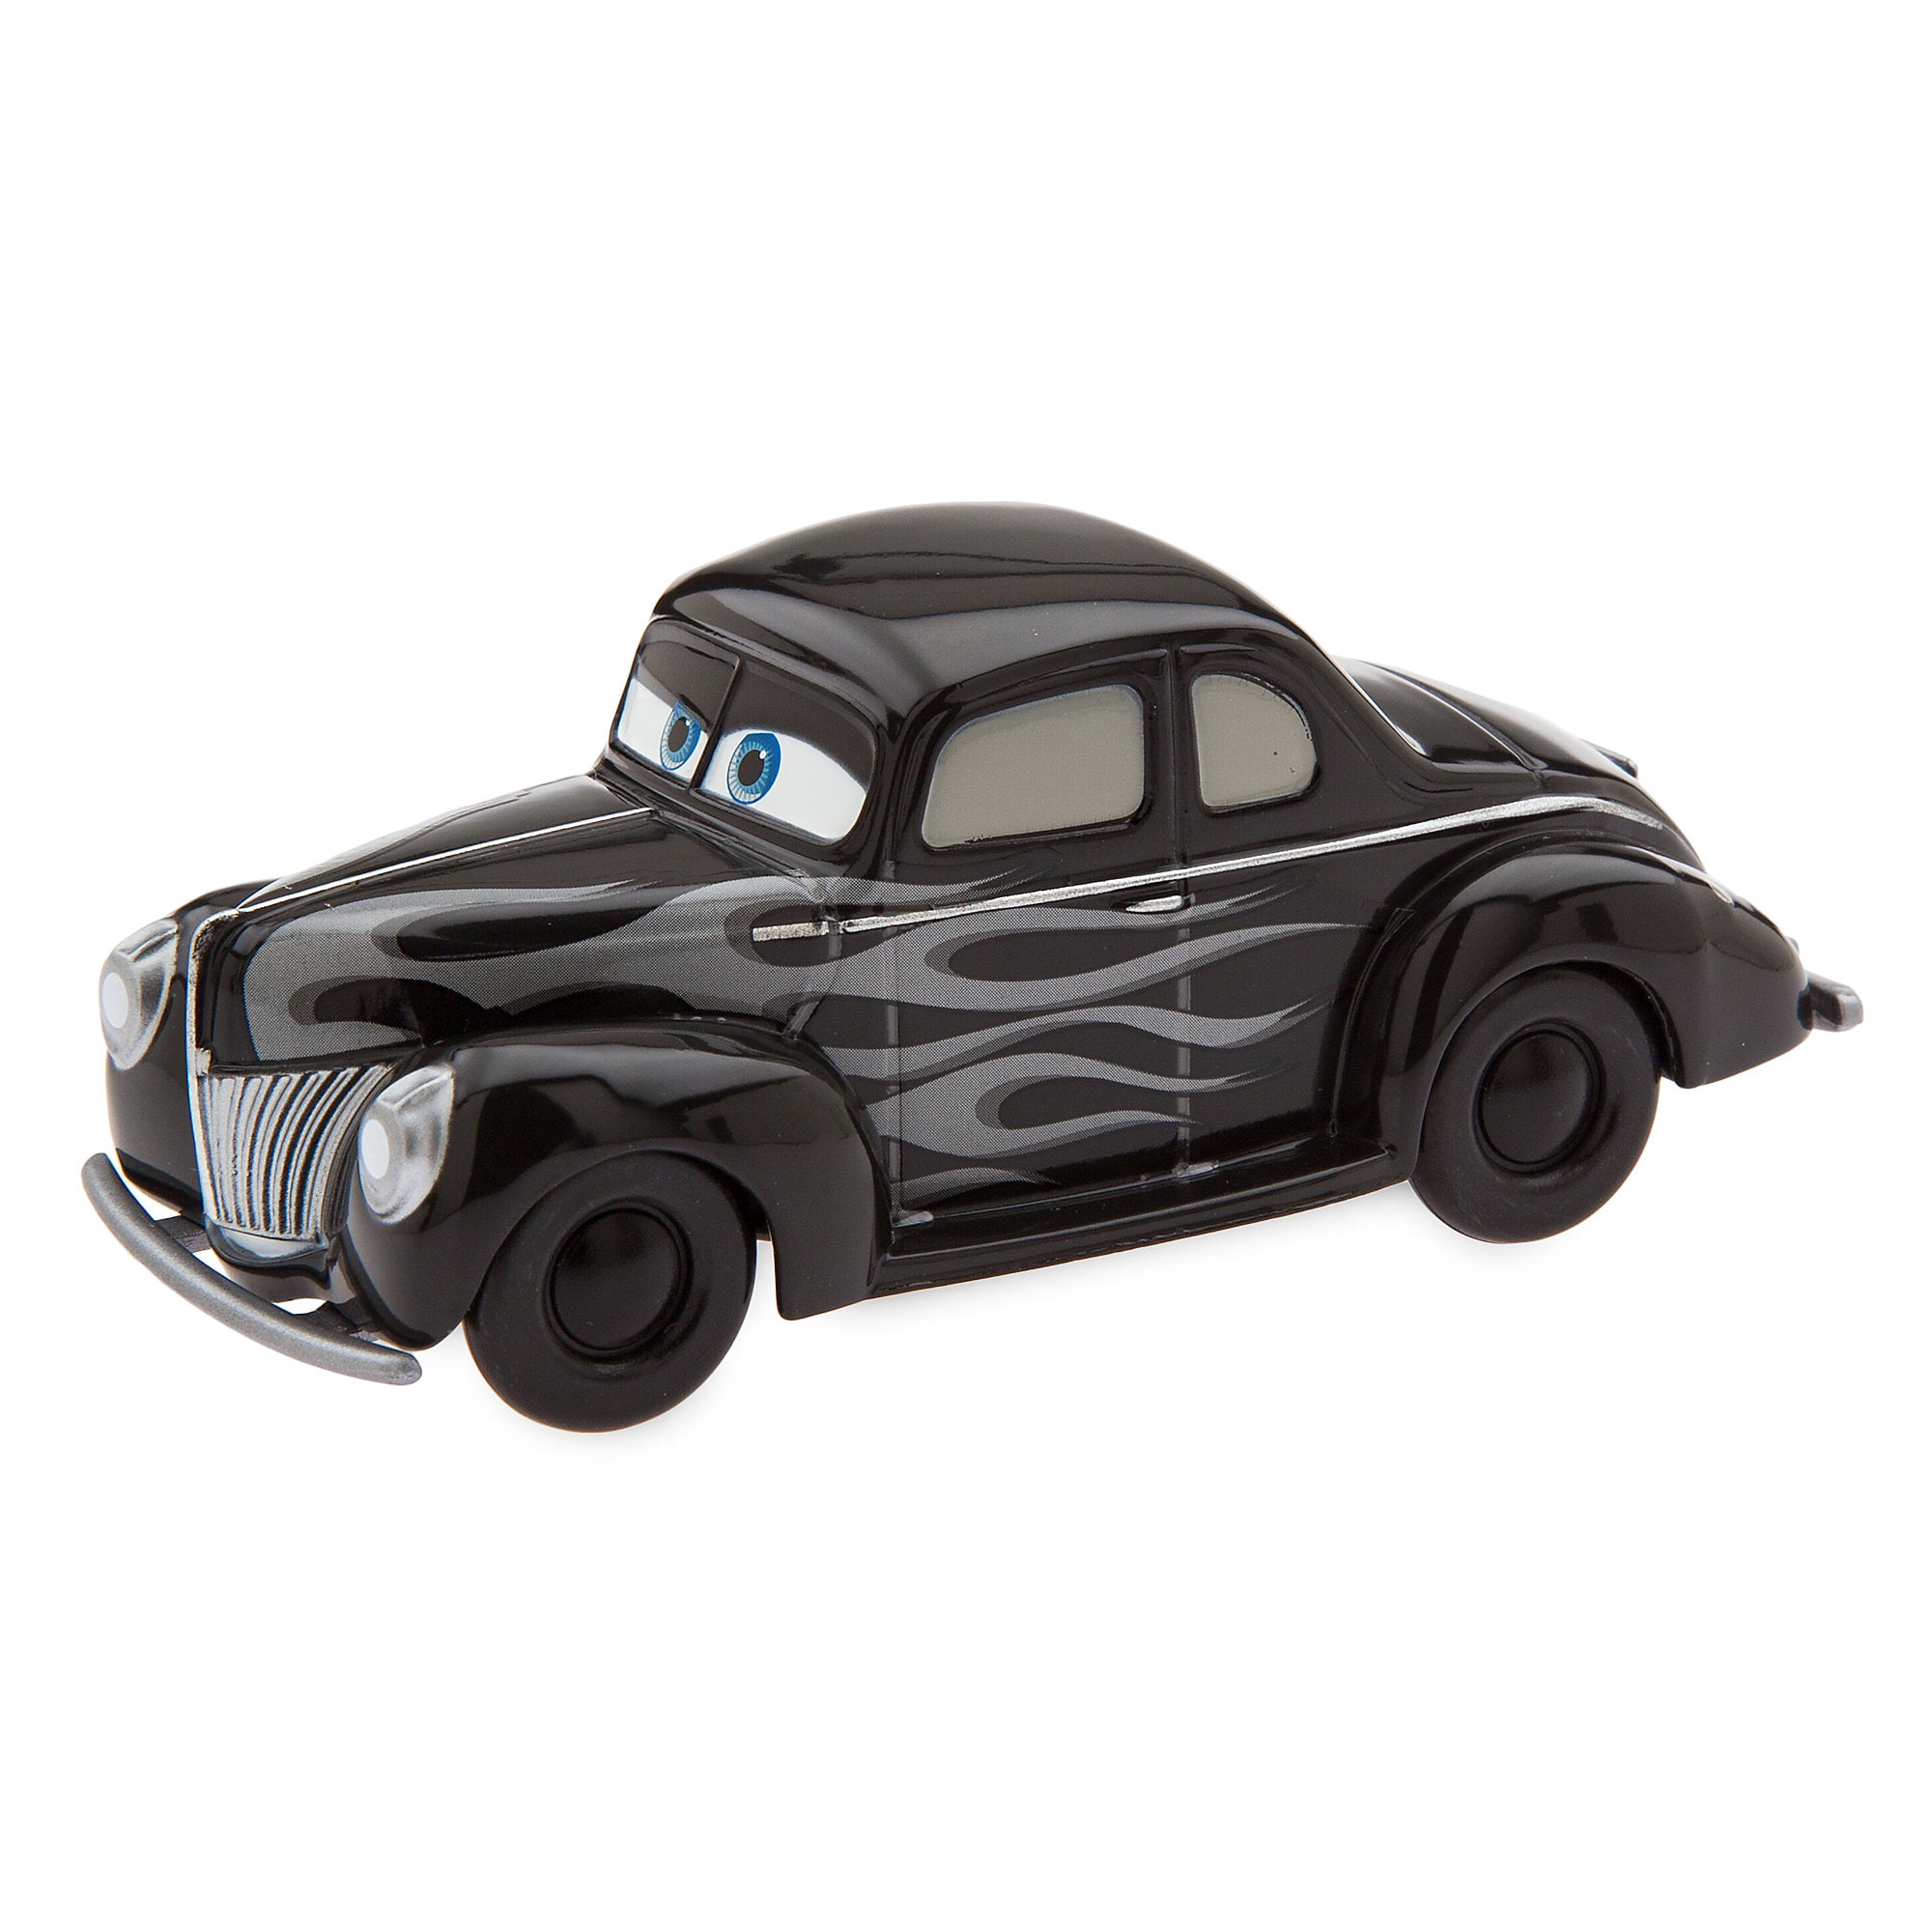 Junior Moon Die Cast Car - Chaser Series - Cars - Limited Release